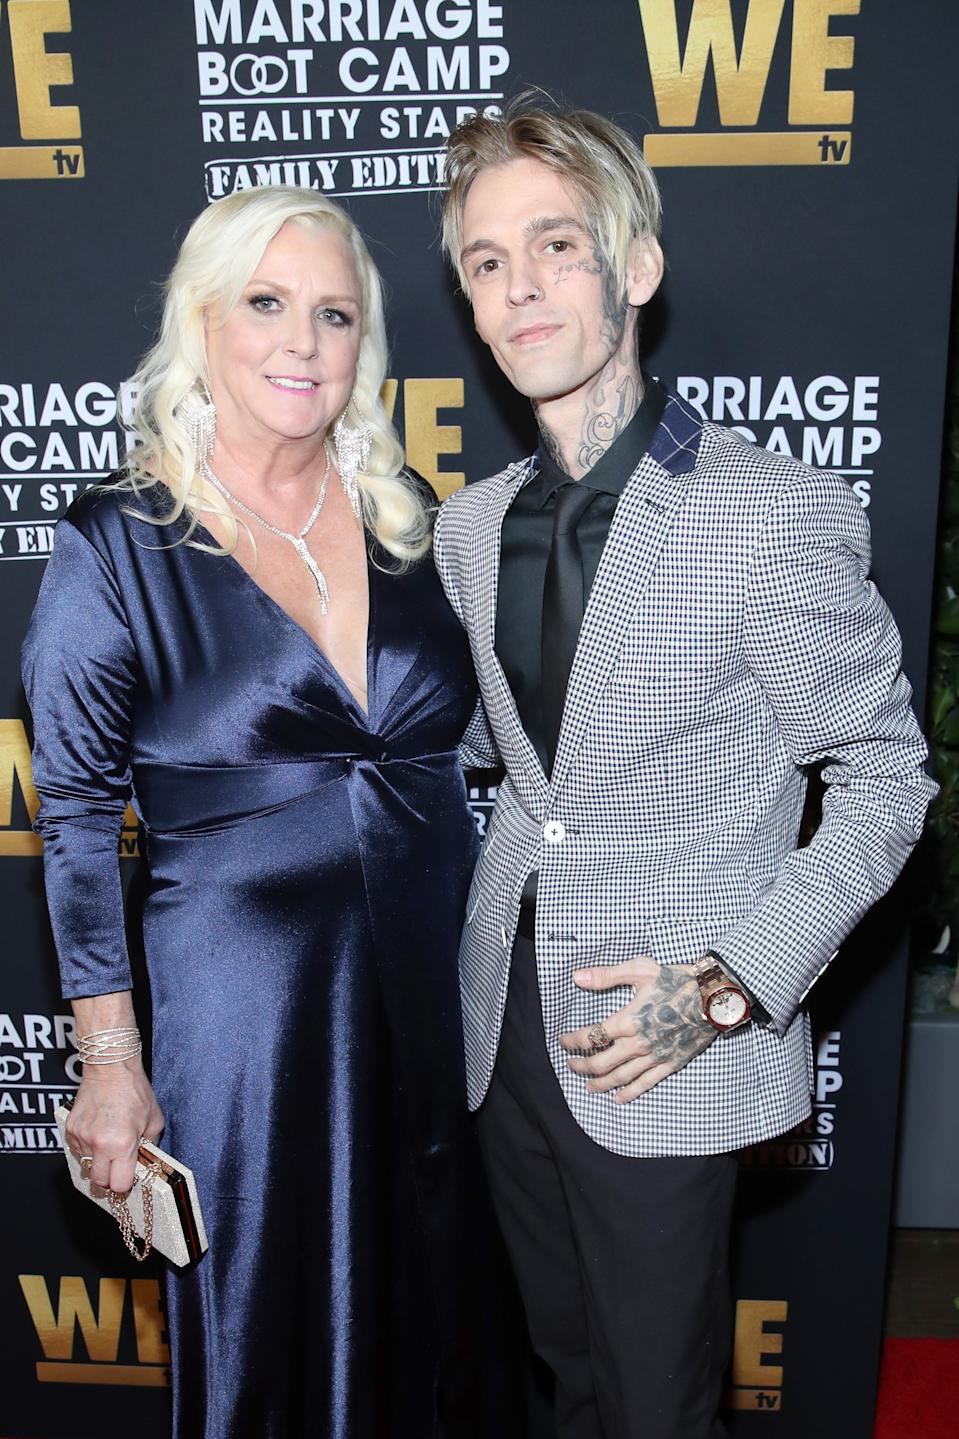 """WEST HOLLYWOOD, CALIFORNIA - OCTOBER 10: Jane Carter and Aaron Carter attend WE tv Celebrates the 100th Episode of the """"Marriage Boot Camp"""" reality stars franchise and the premiere of """"Marriage Boot Camp Family Edition"""" at SkyBar at the Mondrian Los Angeles on October 10, 2019 in West Hollywood, California. (Photo by Randy Shropshire/Getty Images for WE tv )"""